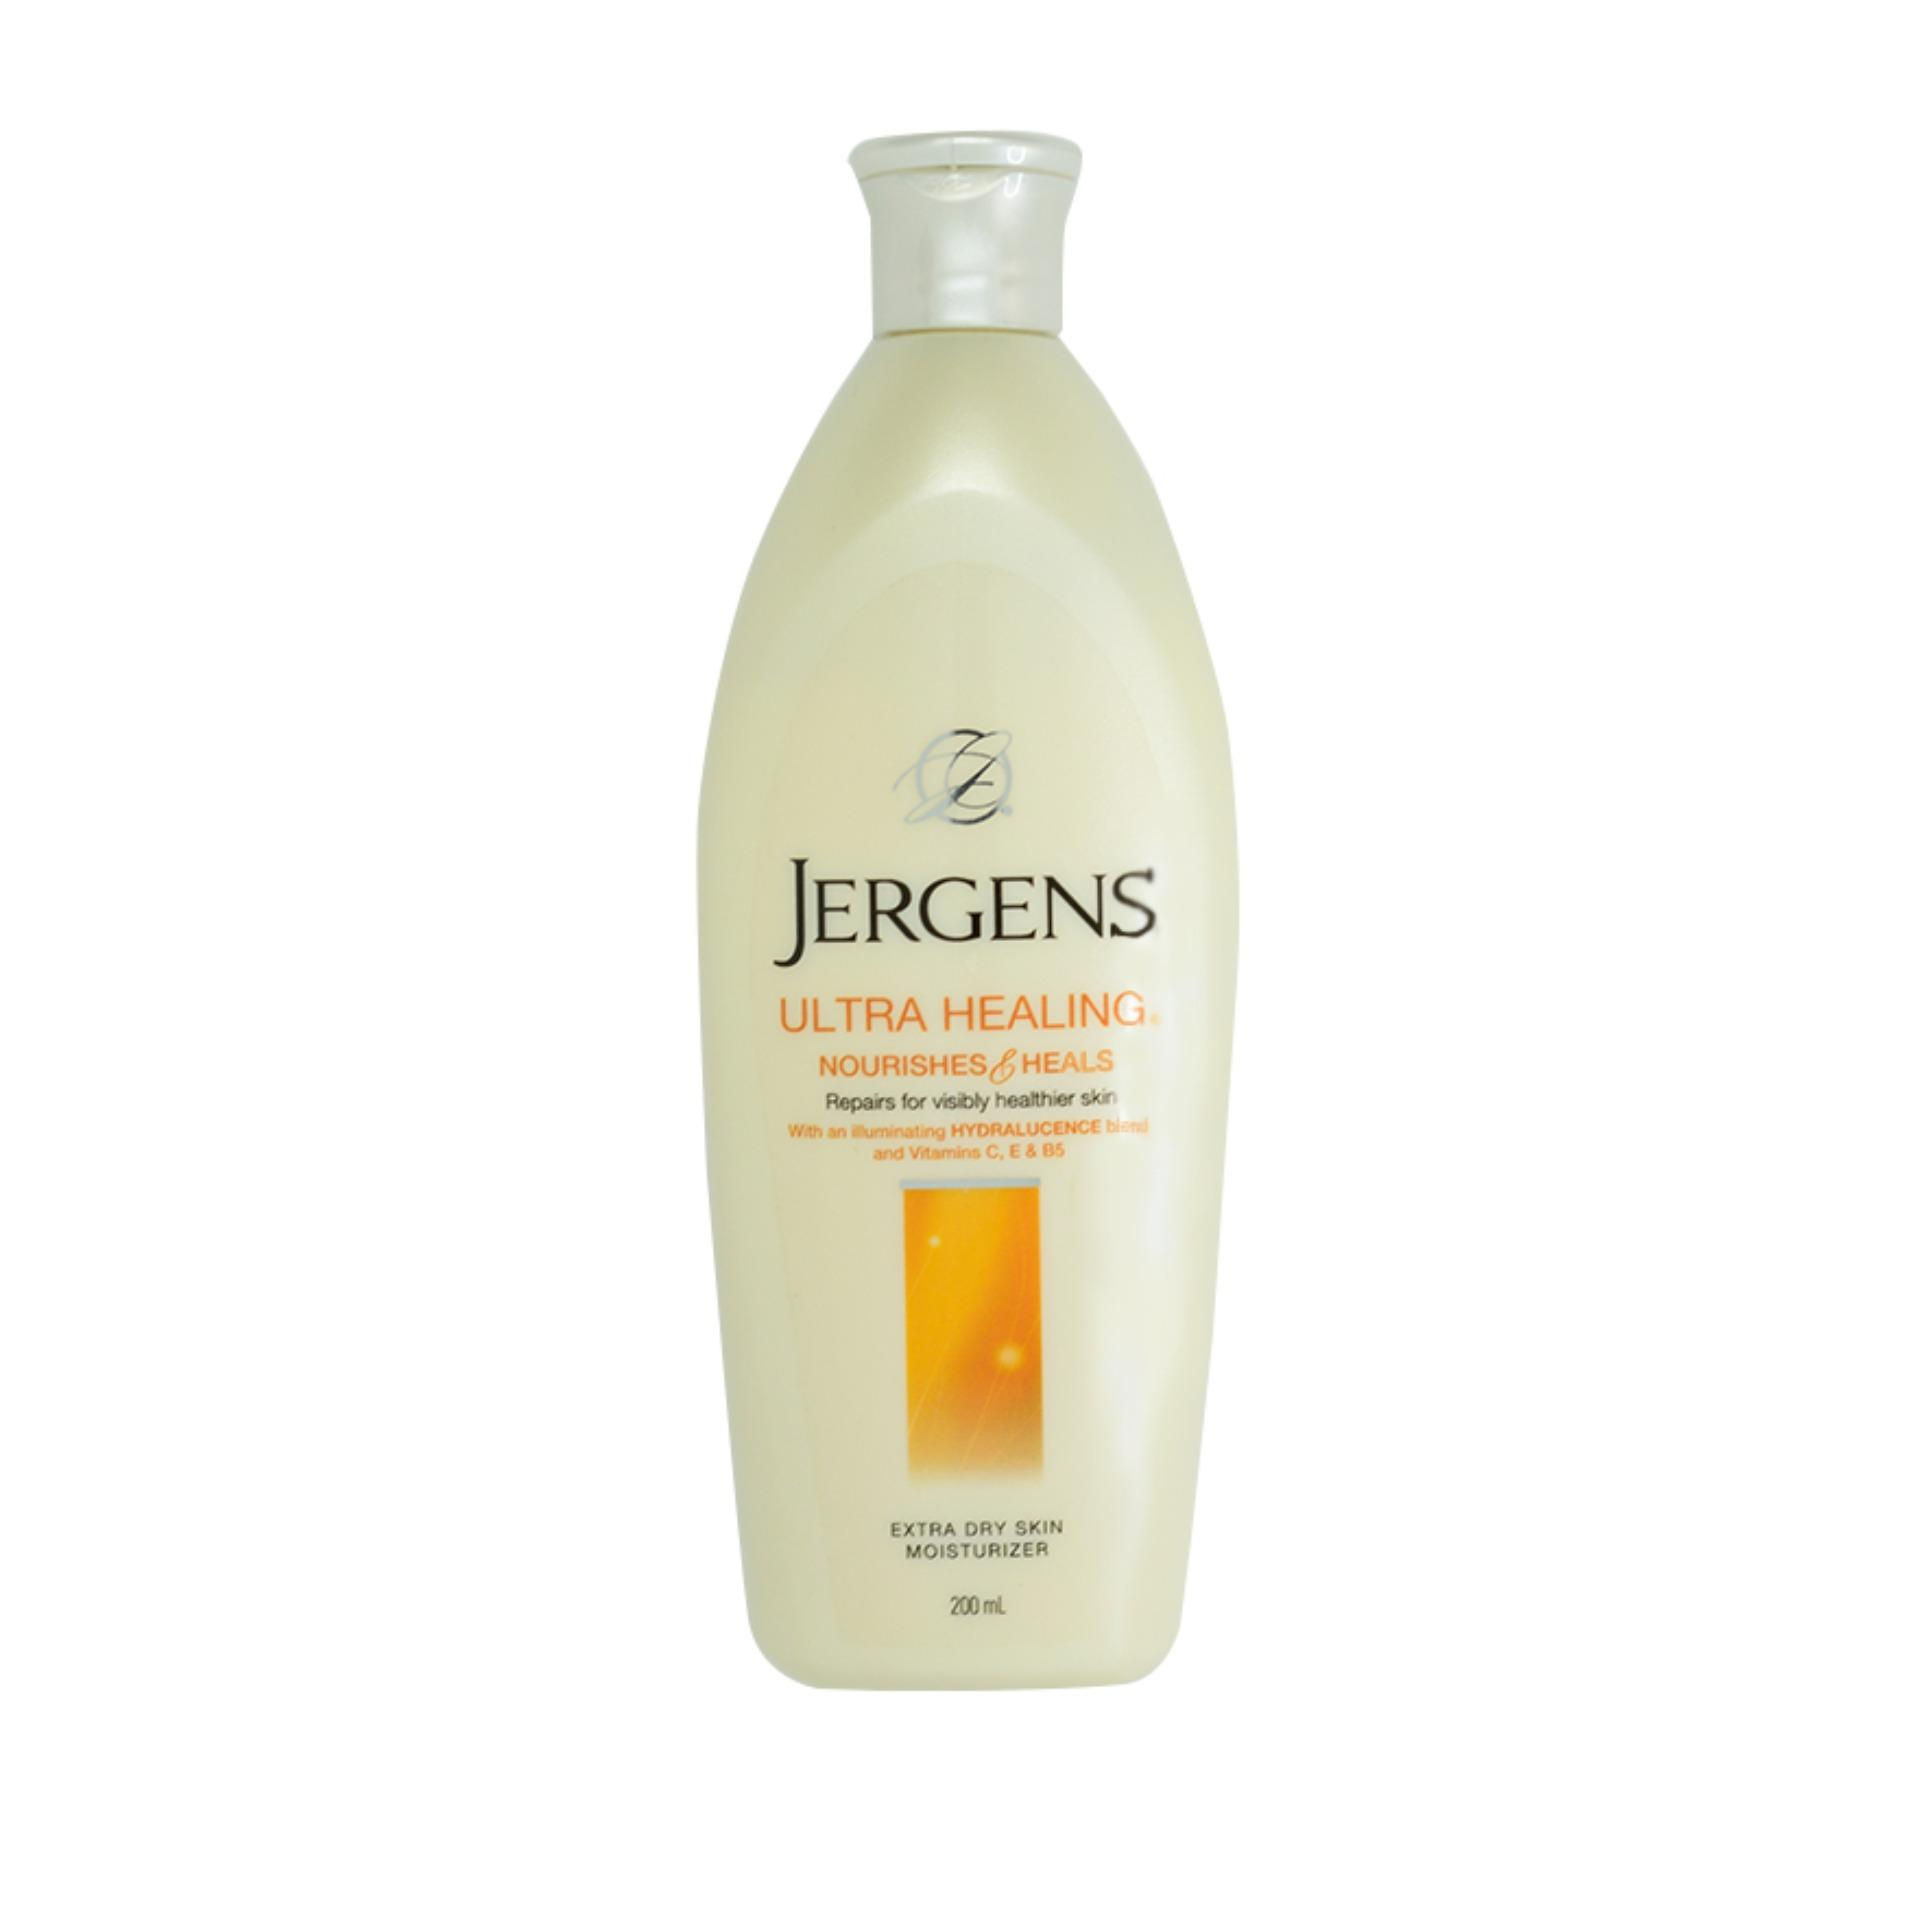 JERGENS Ultra Healing Extra Dry Skin Lotion 200ml